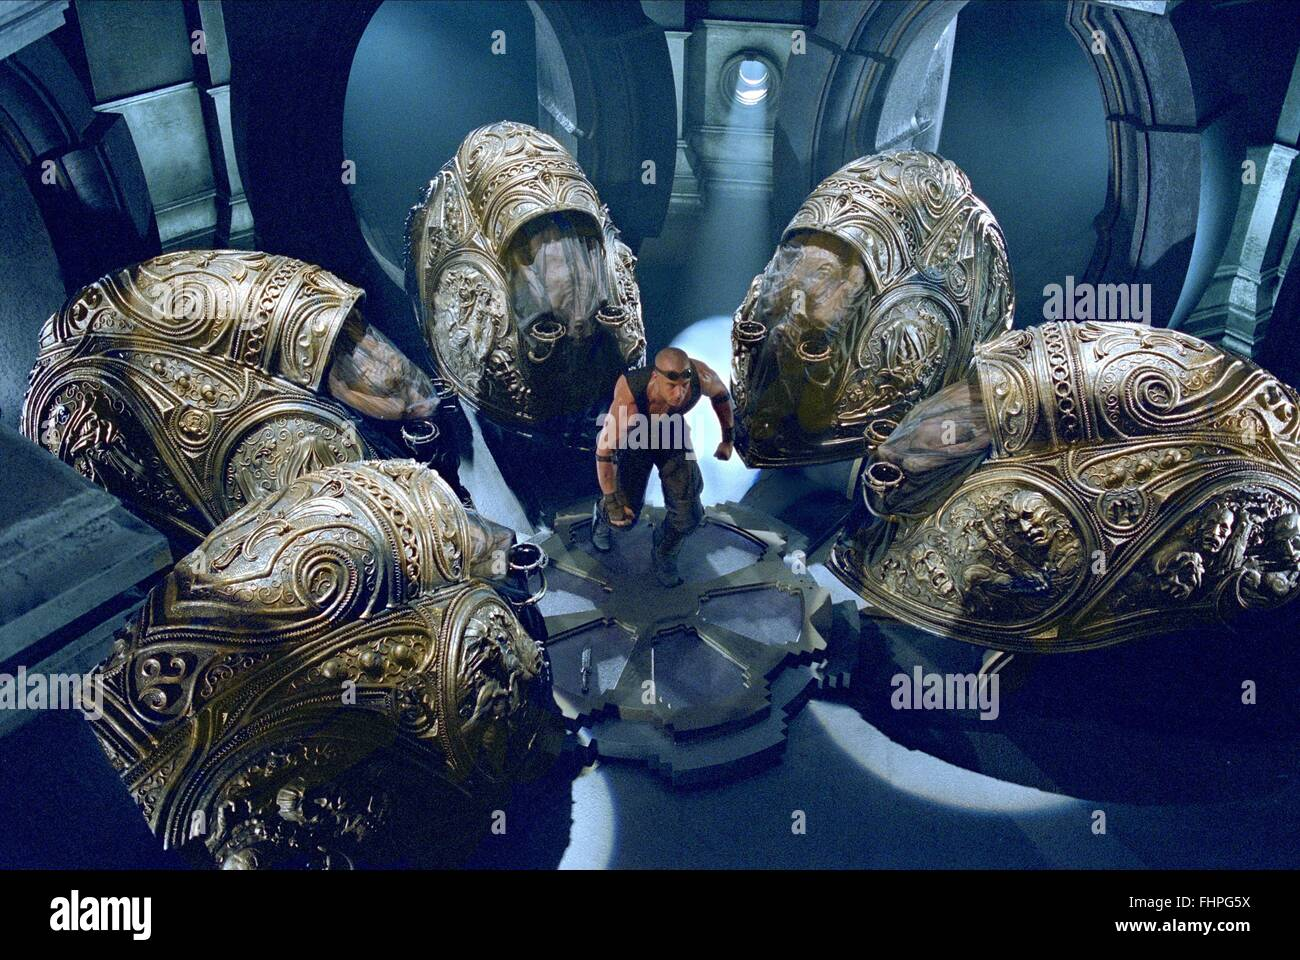 VIN DIESEL THE CHRONICLES OF RIDDICK (2004 Stock Photo - Alamy